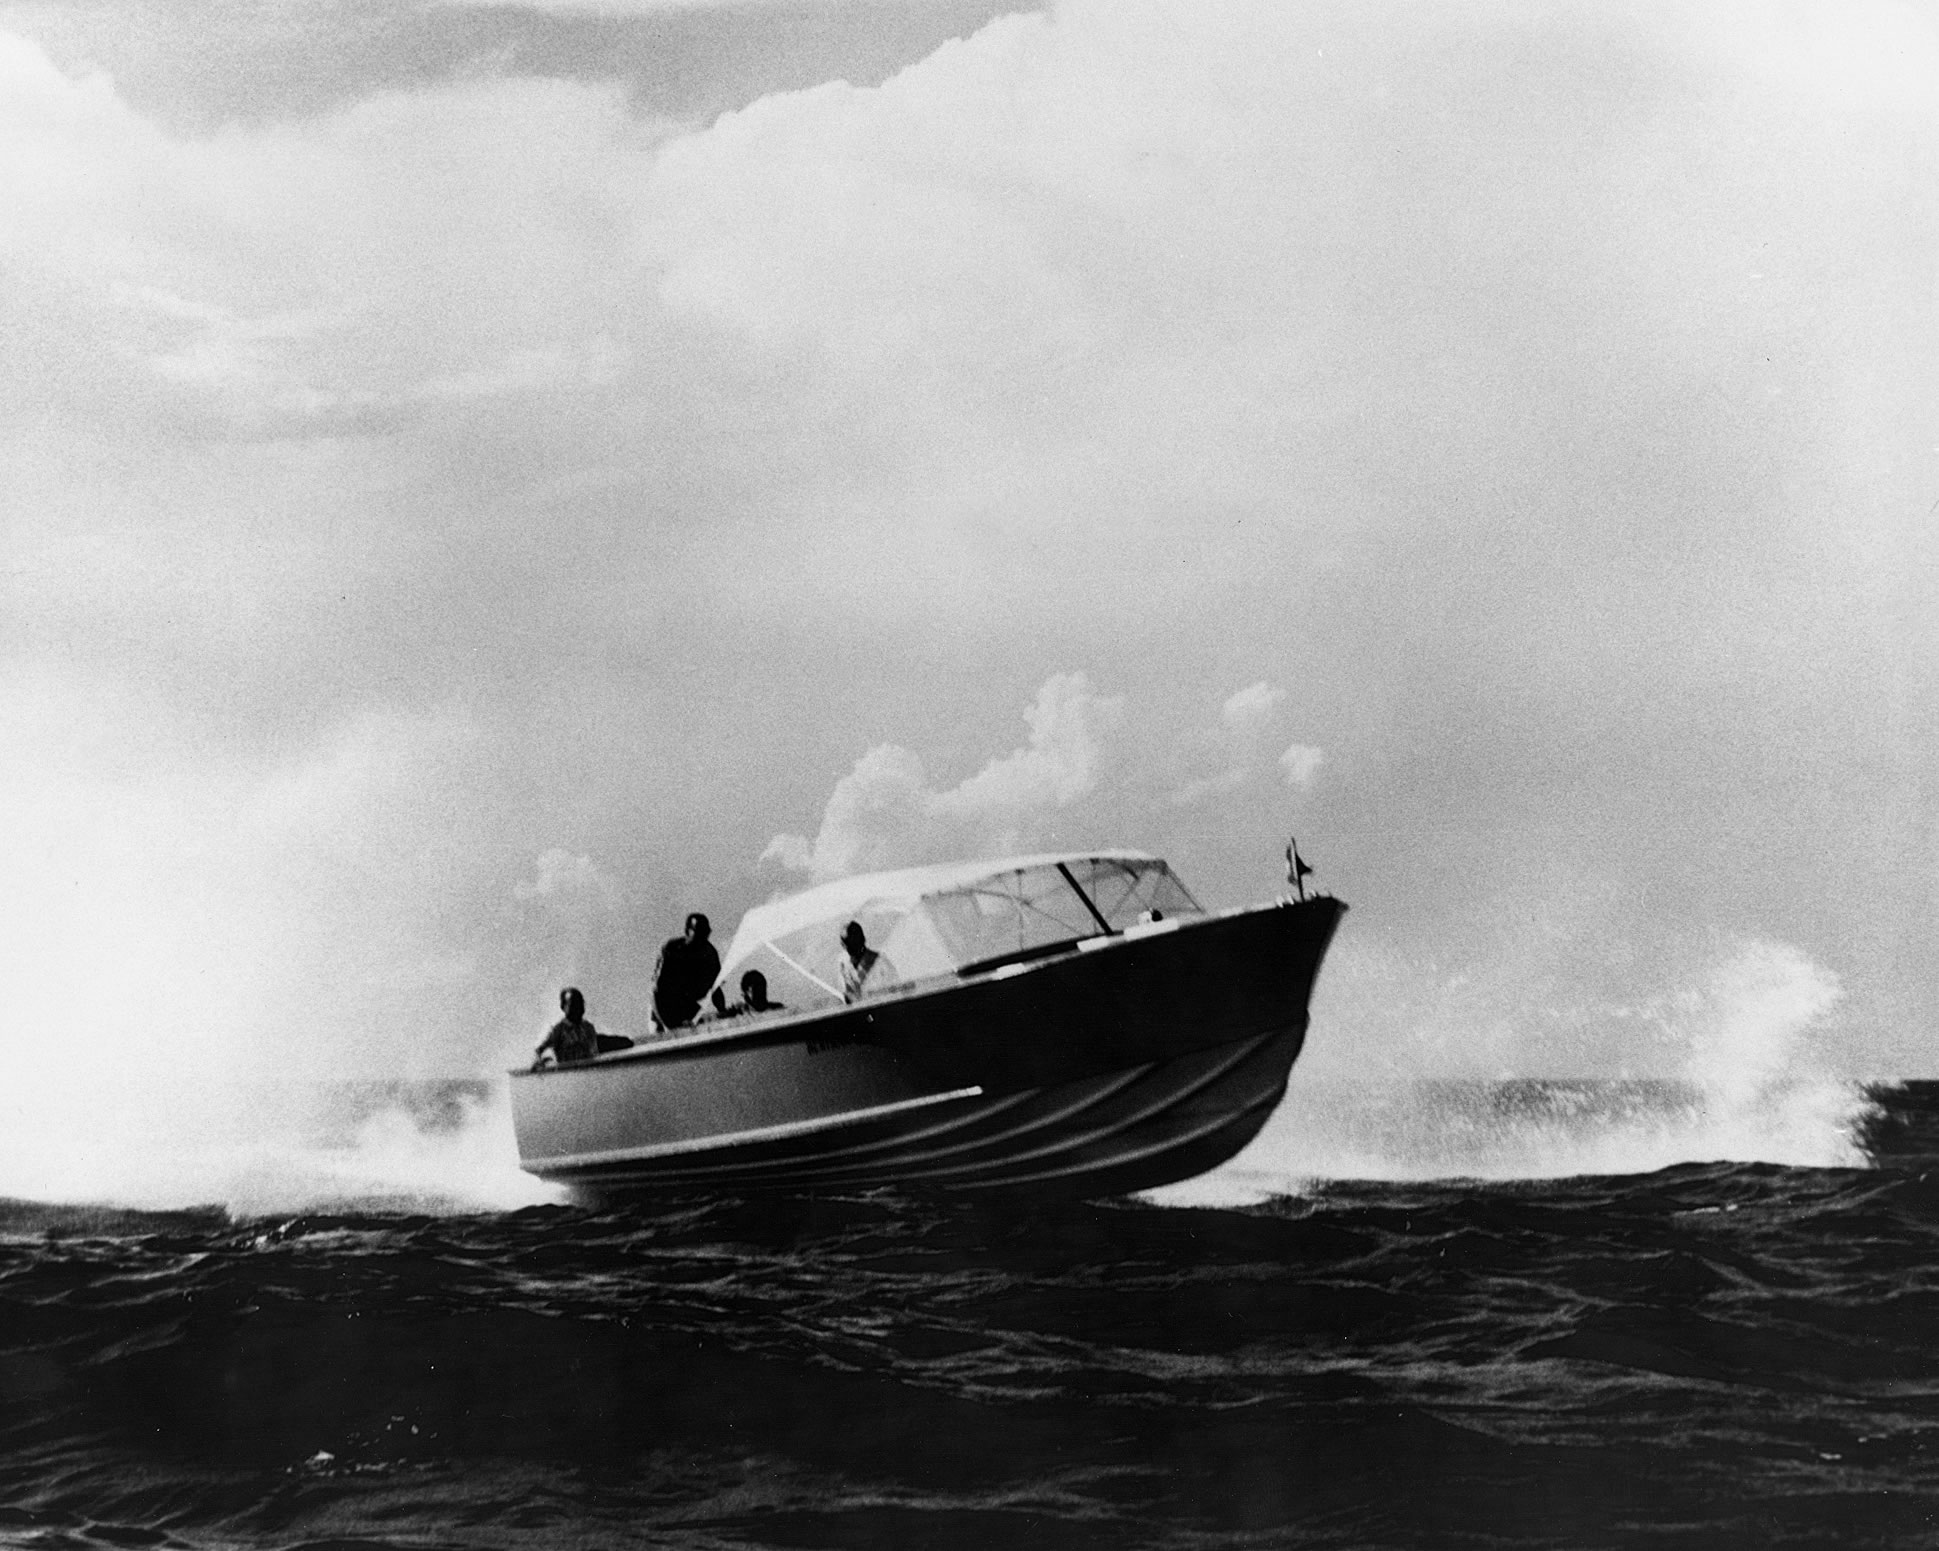 It came from Dick Bertram's runabout (a 30-foot wood boat which was used for ...